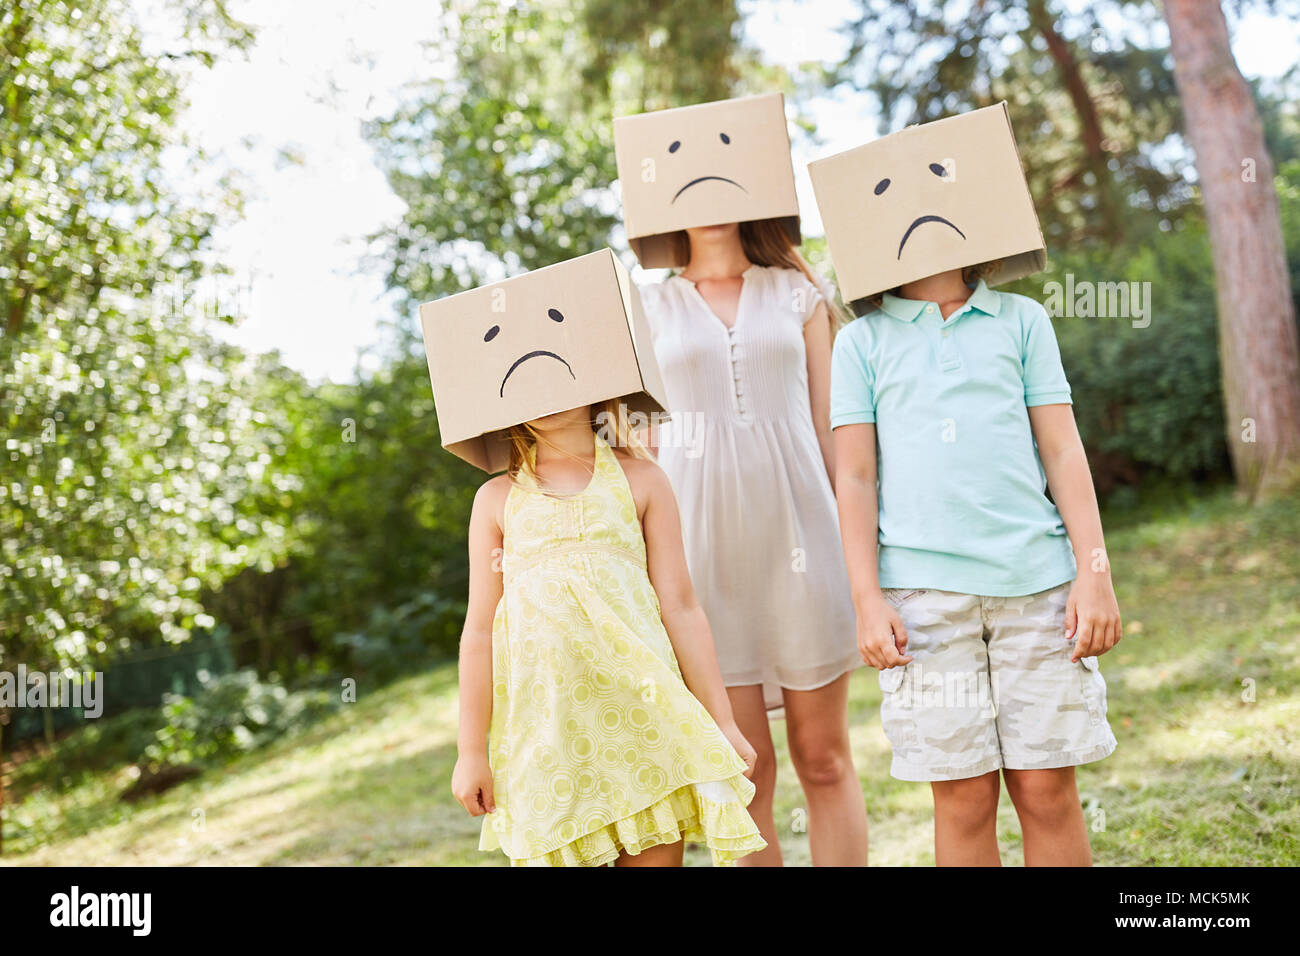 Anonymous family is hiding under cardboard boxes with a grief face in a garden - Stock Image